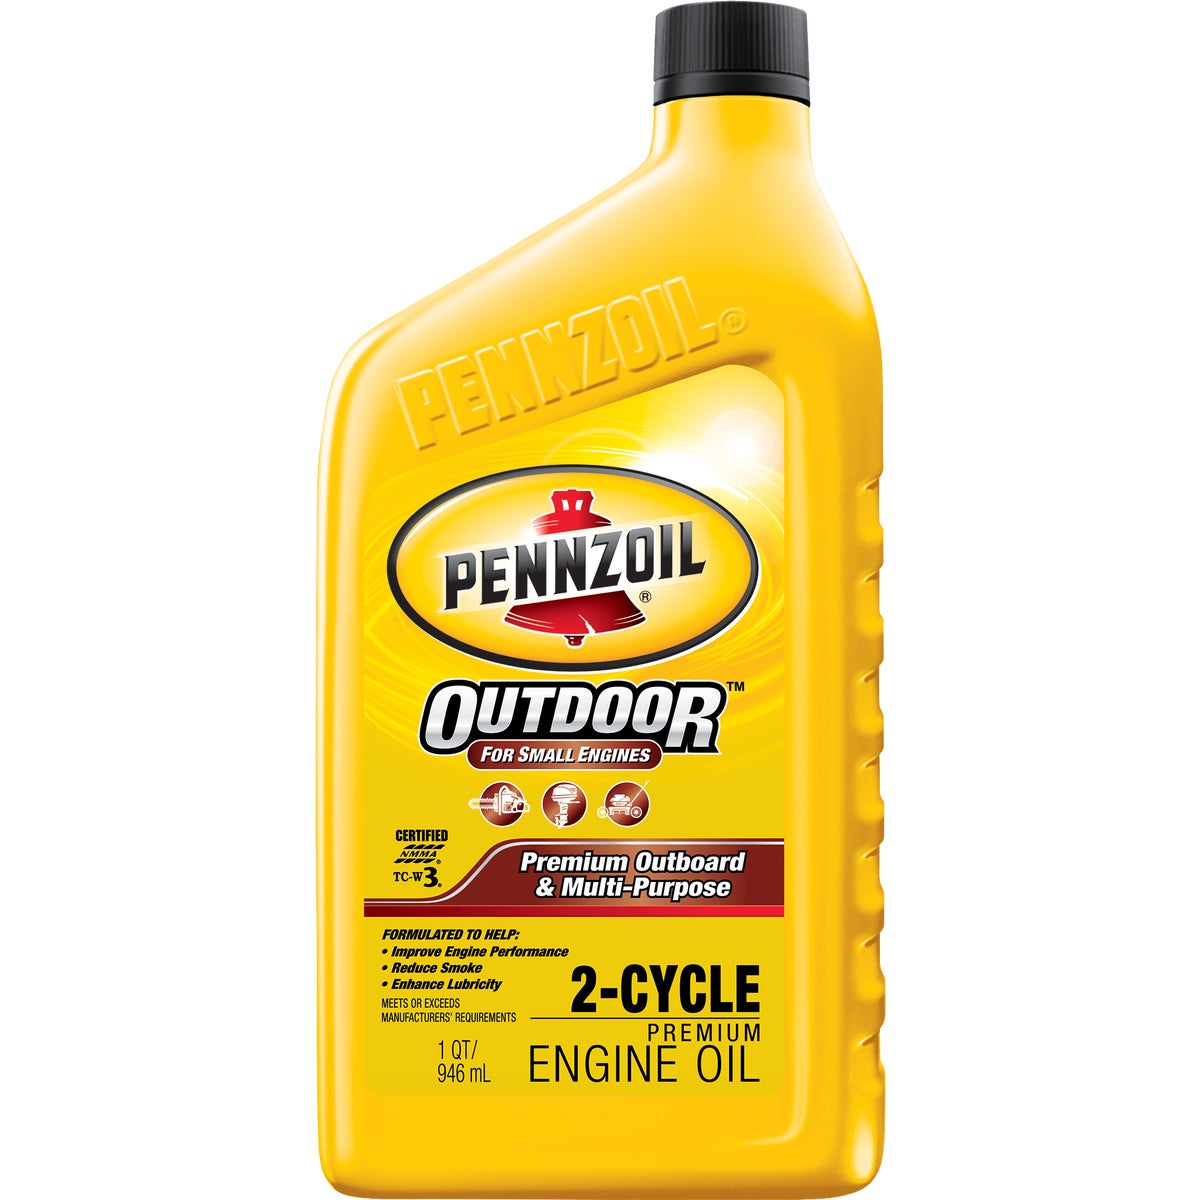 Pnz Outboard 2-Cycle Oil